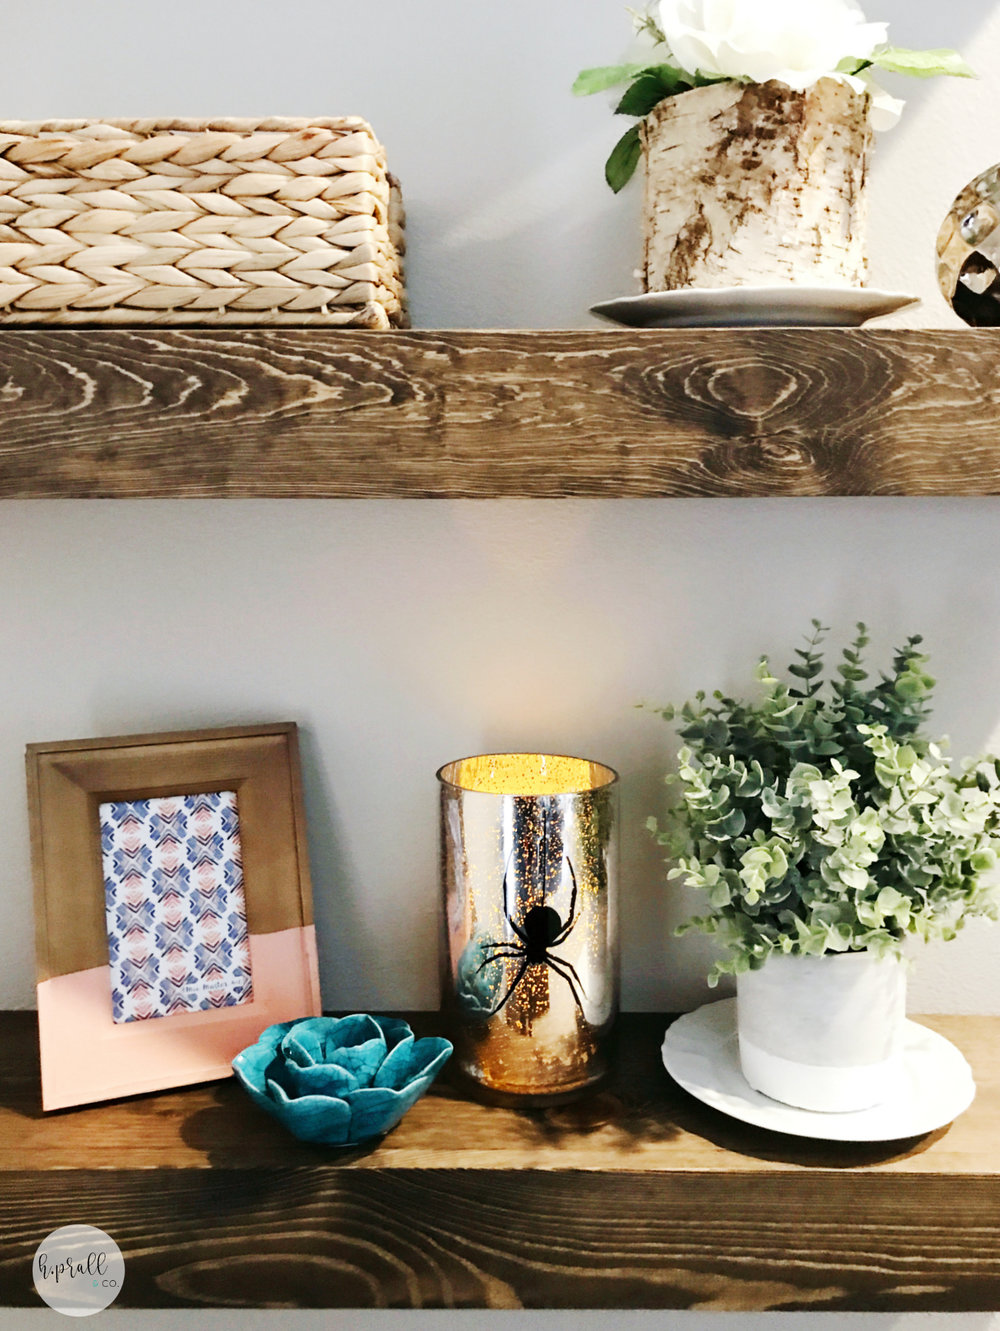 Get Creative to Decorate on a Budget from H.Prall & Co. Interior Decorating | hprallandco.com